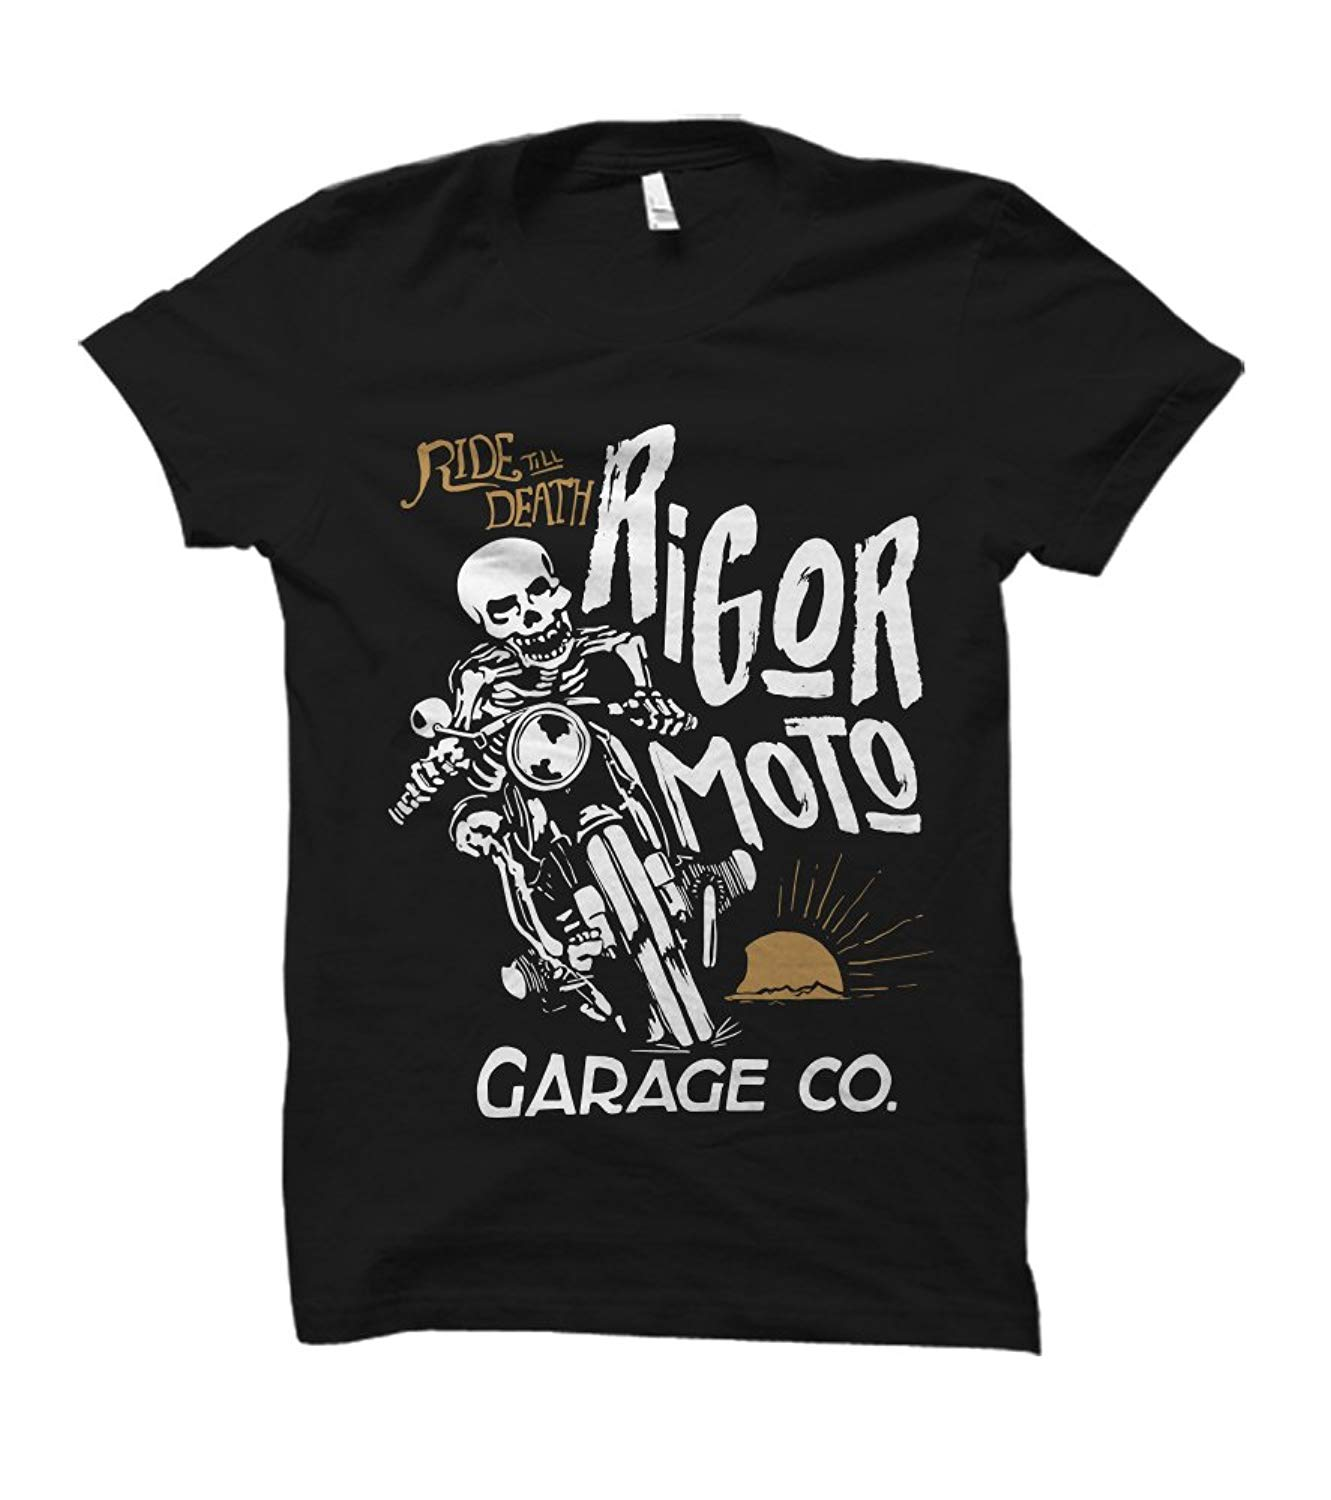 Ride Till Death Rigor Moto Skeleton Adult  Brand Clothihng Top Quality Fashion Mens T Shirt 100% Cotton